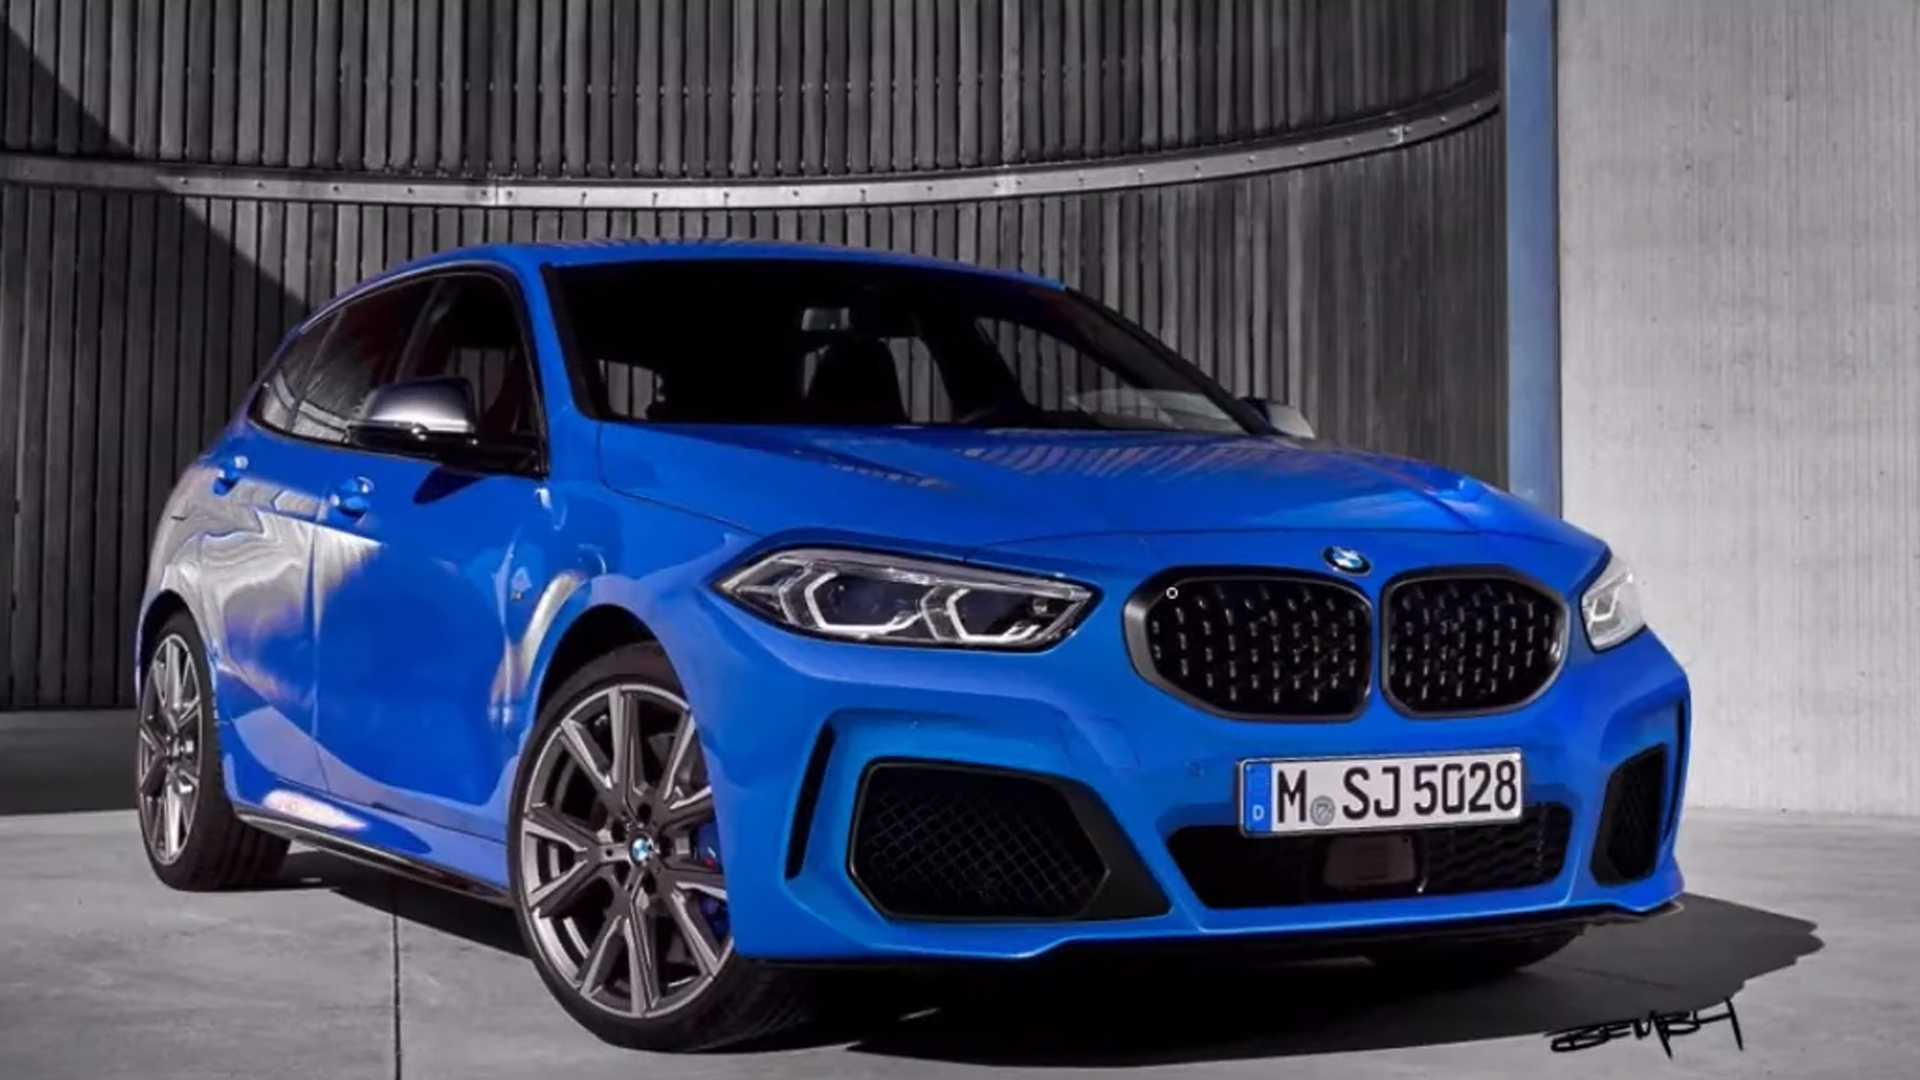 37 Concept of BMW Hatchback 2020 New Review with BMW Hatchback 2020